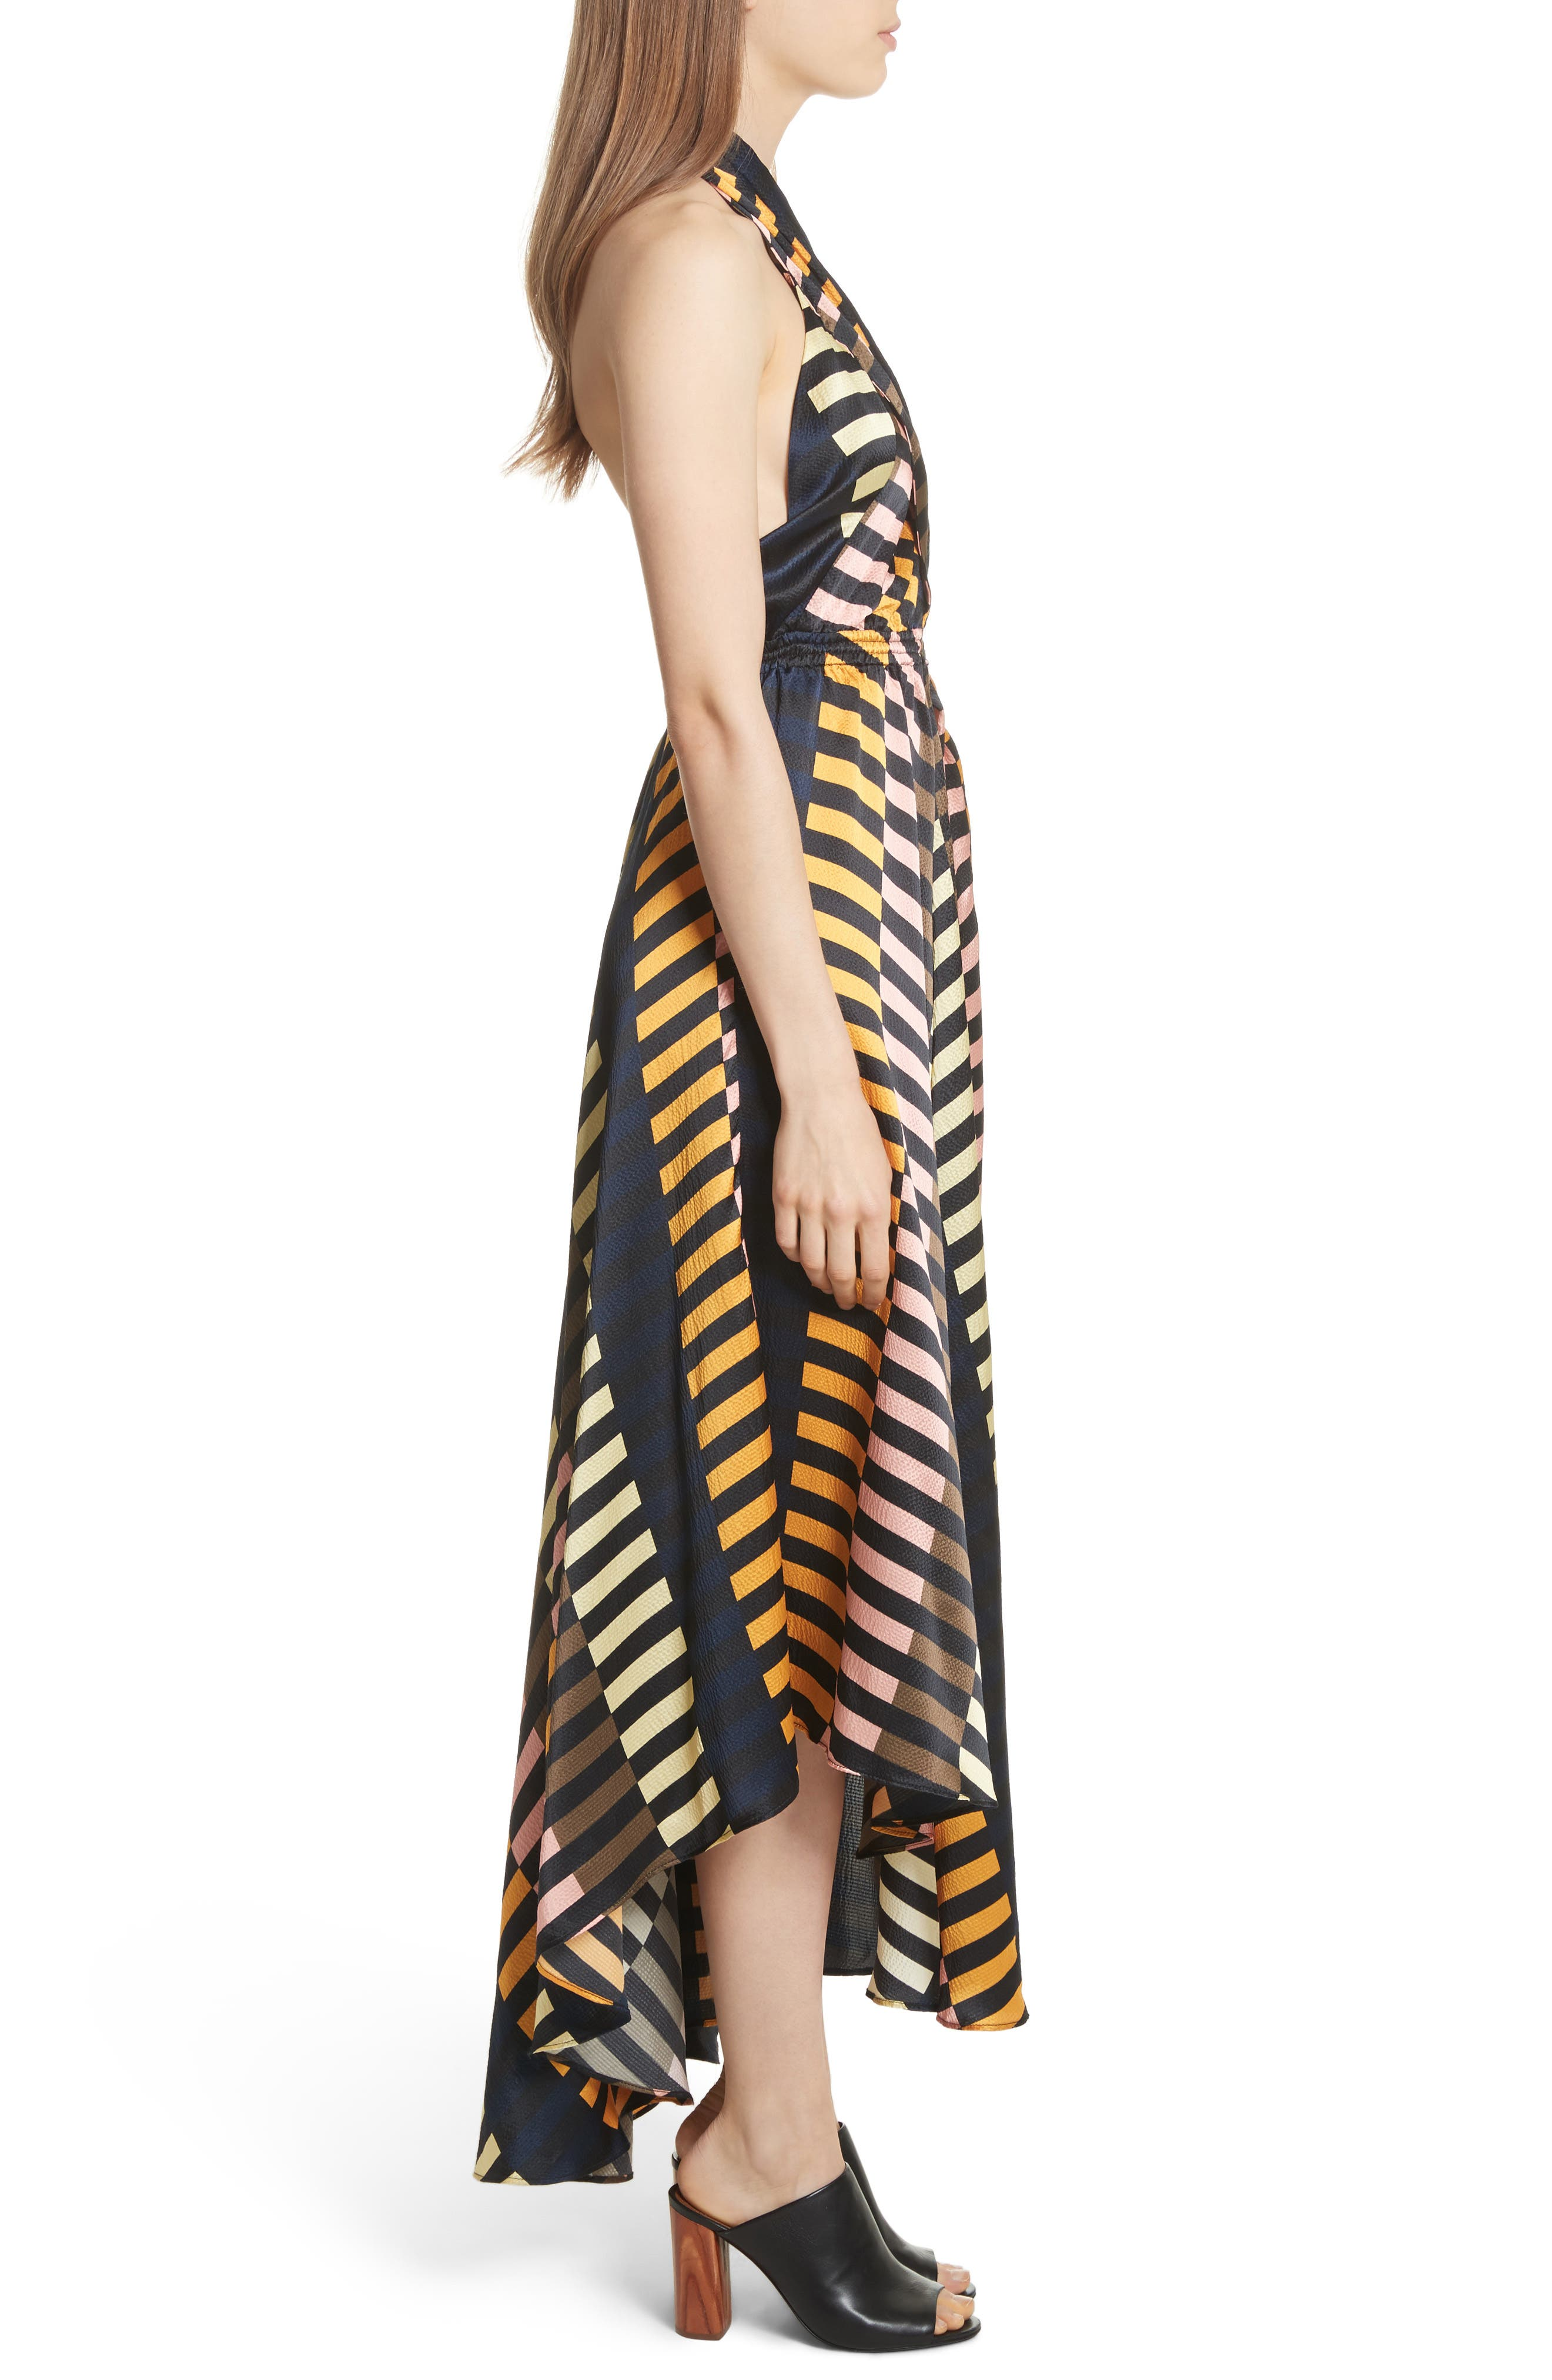 Nightingale Silk Halter Dress,                             Alternate thumbnail 3, color,                             Majorelle Print